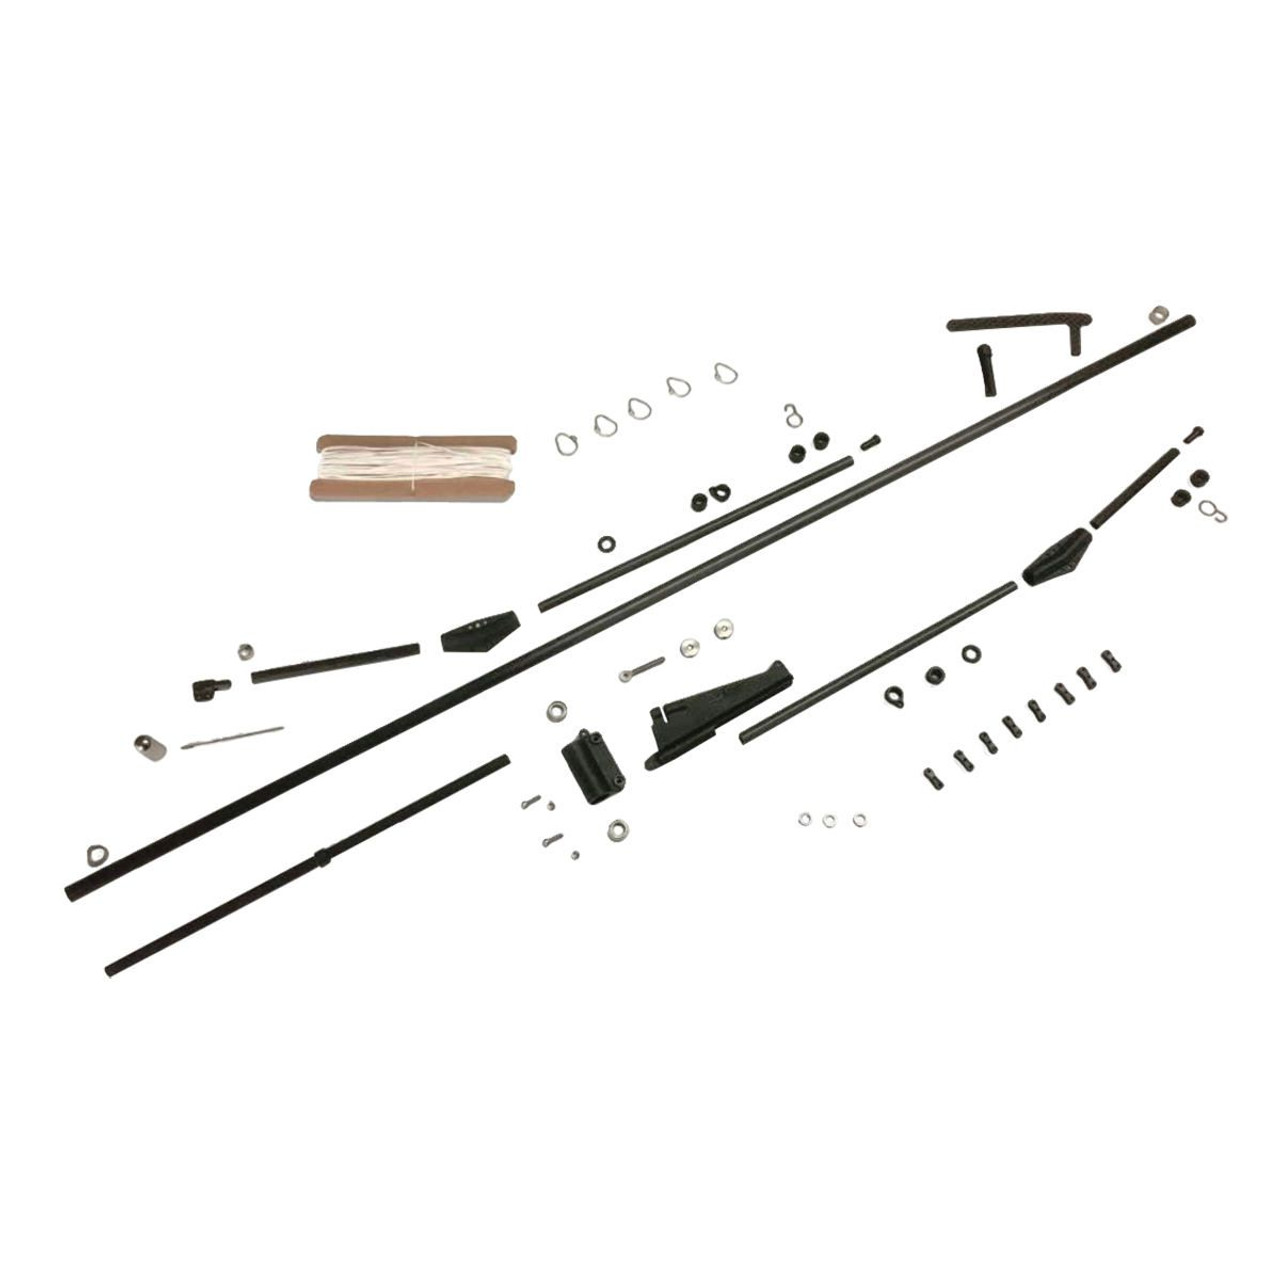 881181 DF95 New Complete A Rig Assembly (No Sails)